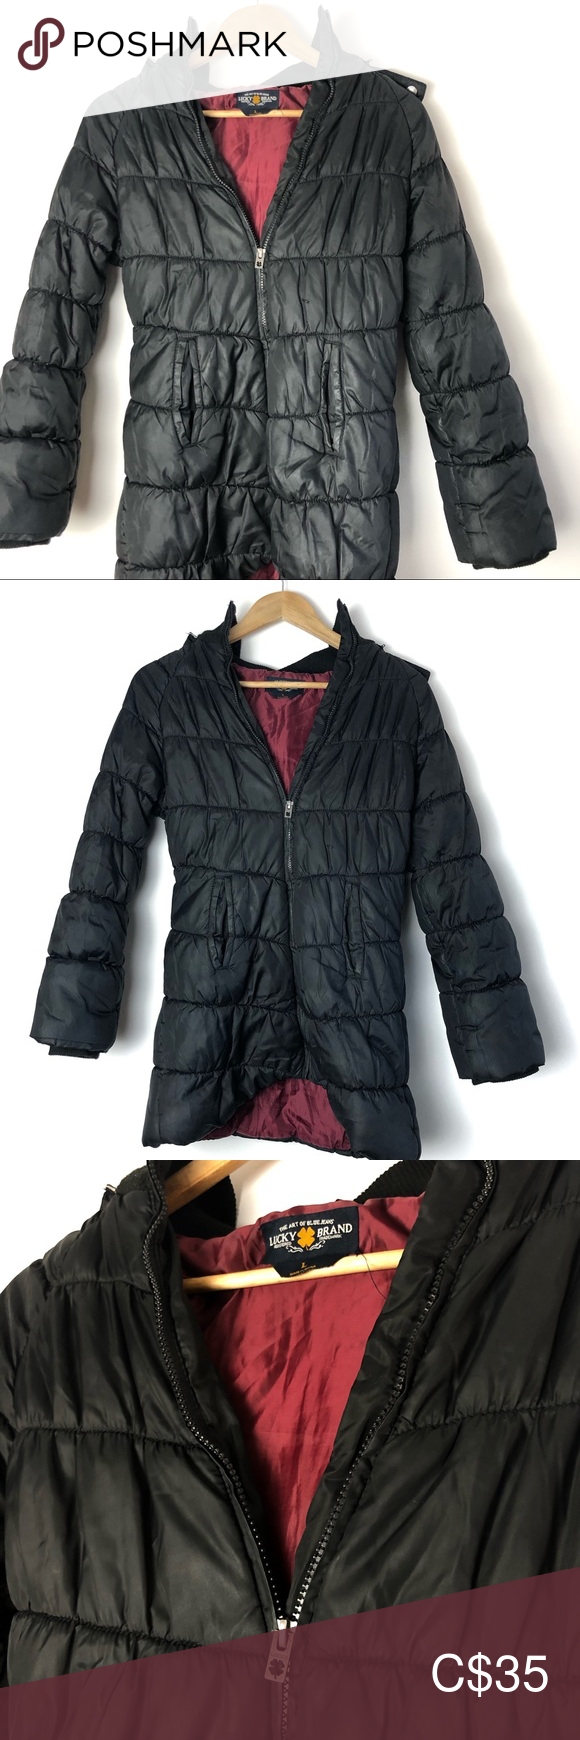 Lucky Brand Puffer Jacket Lucky Brand Puffer Jacket This Jacket Is Great For The Upcoming Winter It Is Very Warm With A Clothes Design Lucky Brand Fashion [ 1740 x 580 Pixel ]